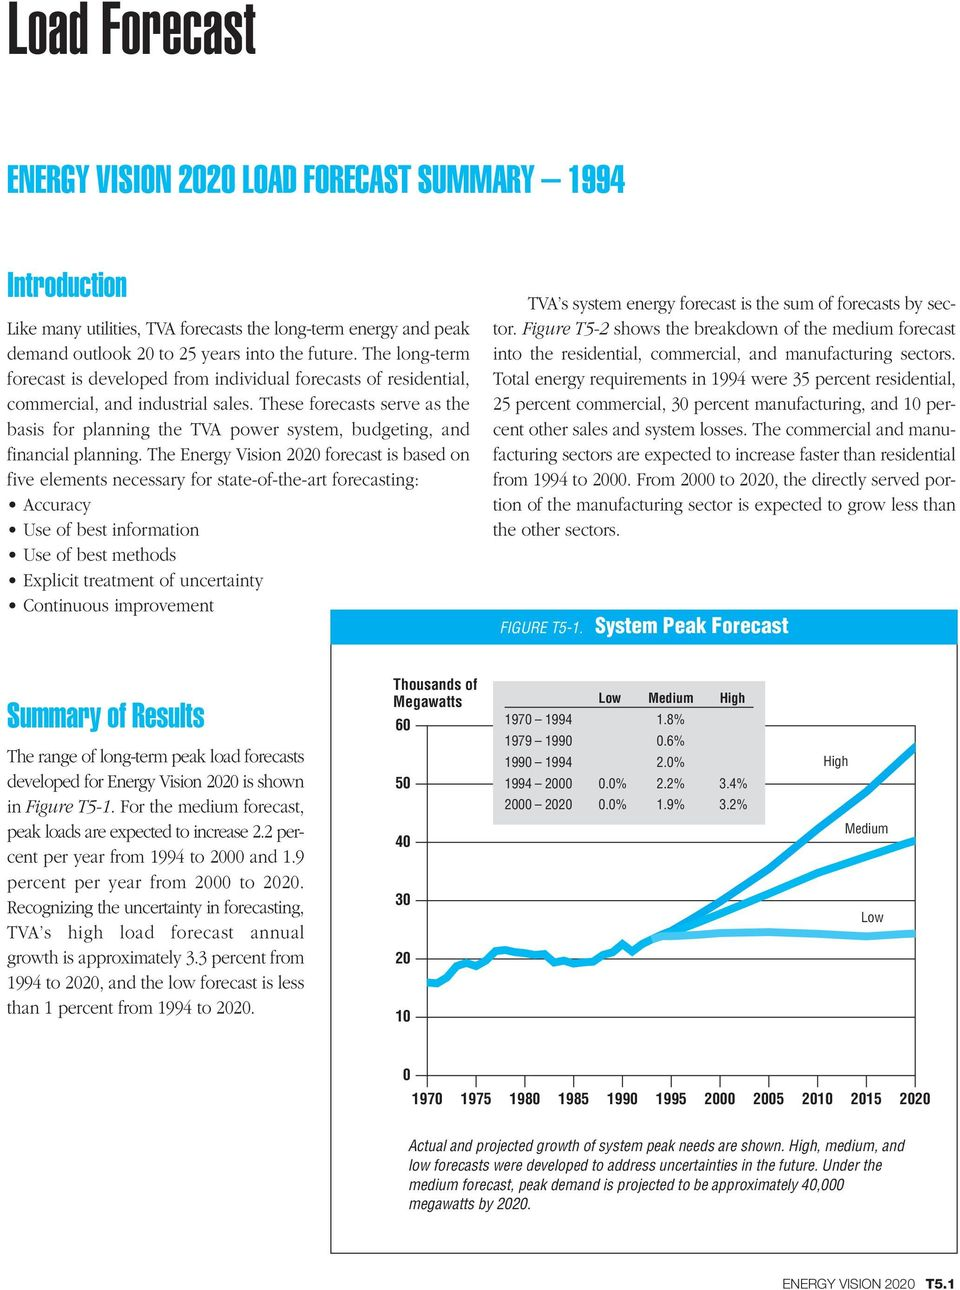 These forecasts serve as the basis for planning the TVA power system, budgeting, and financial planning.